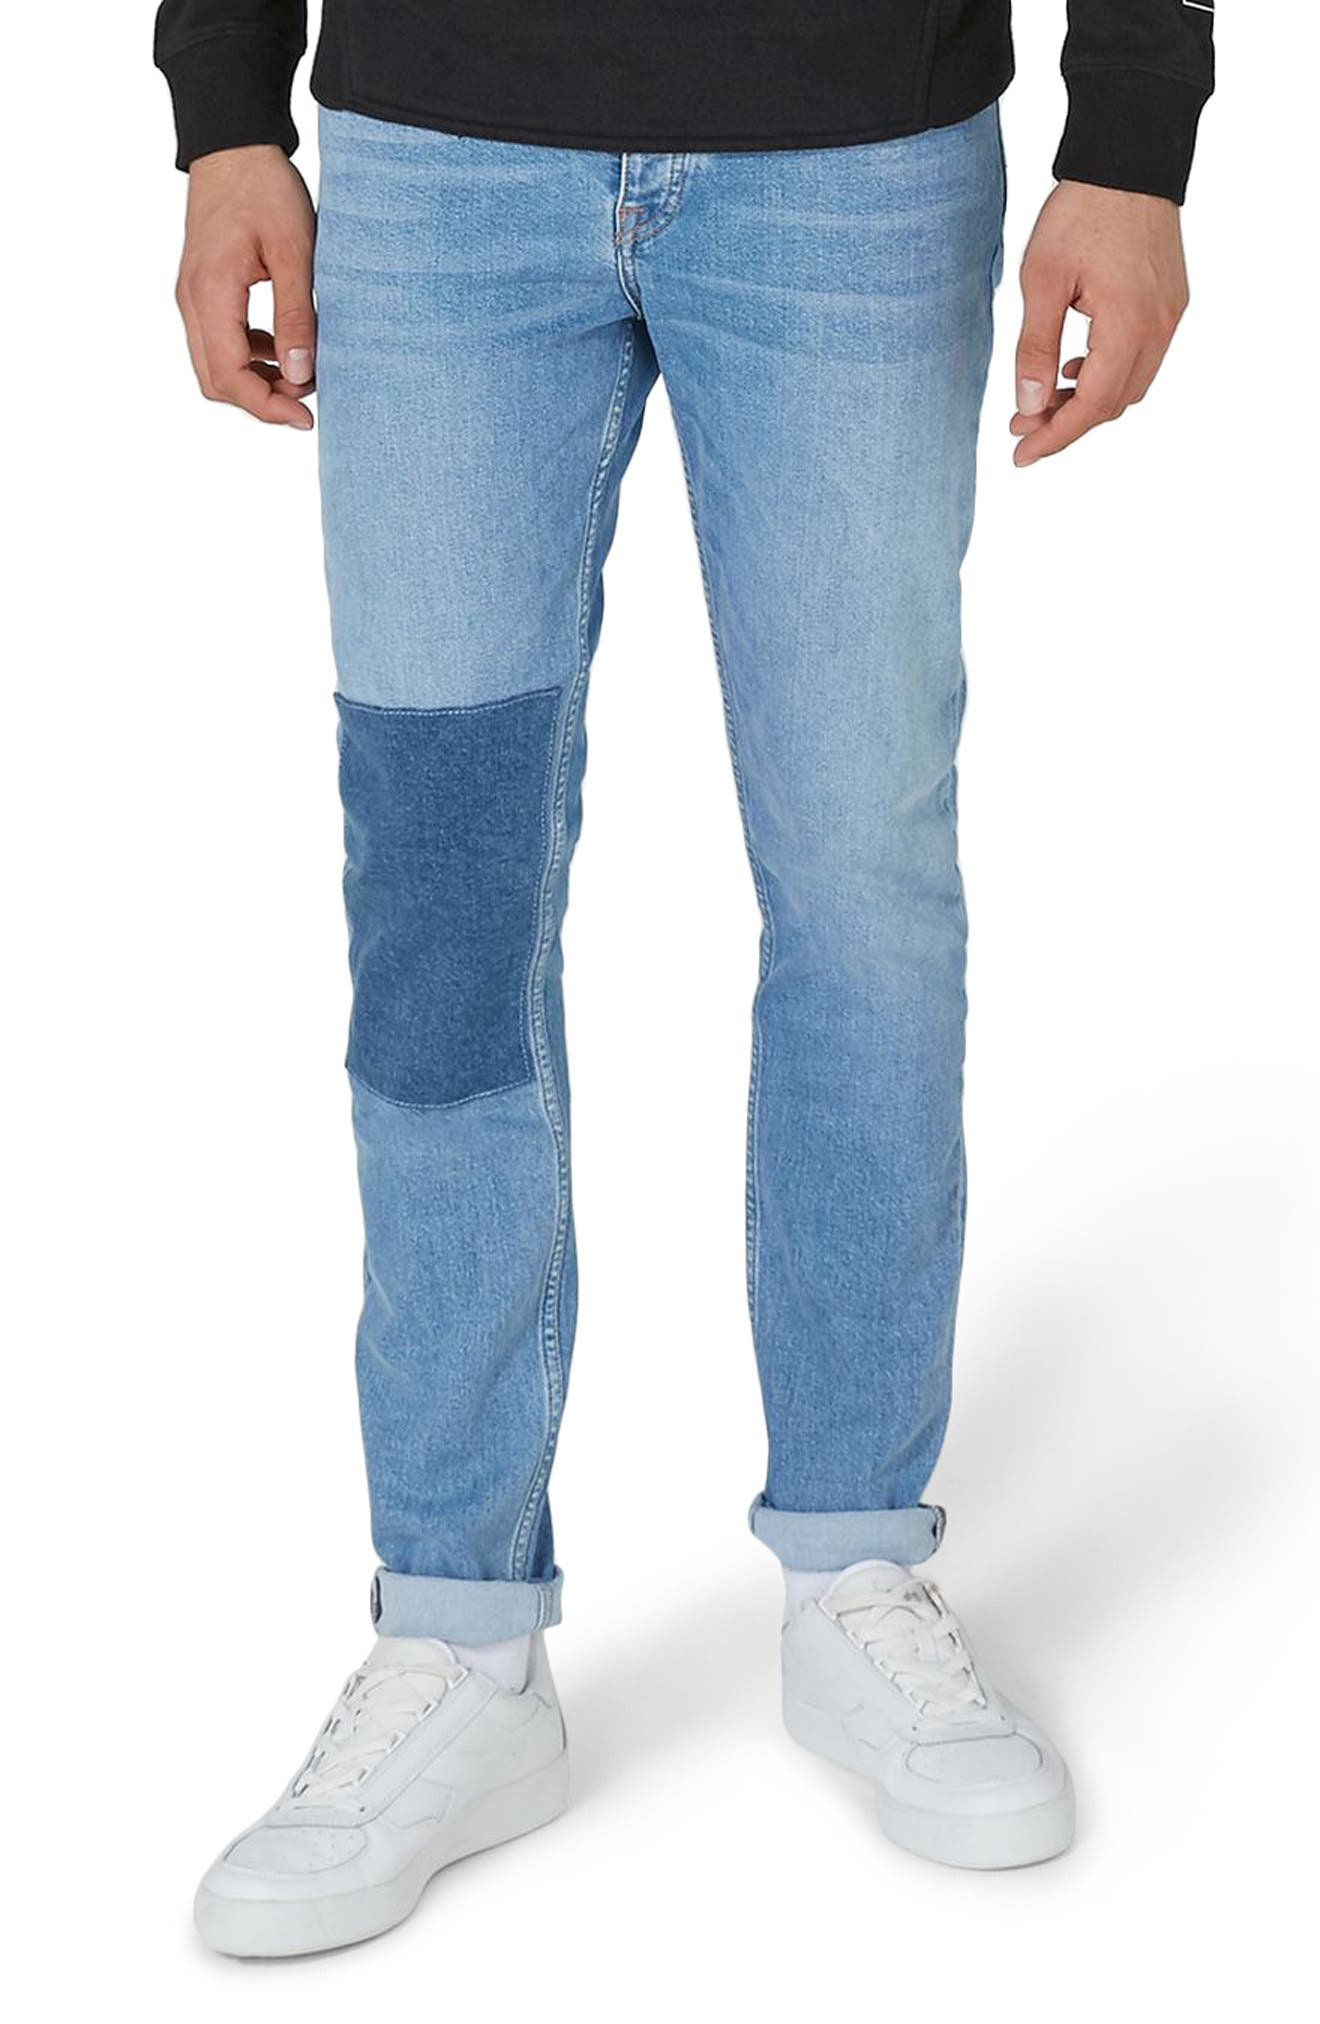 Patch Stretch Skinny Jeans,                             Main thumbnail 1, color,                             400